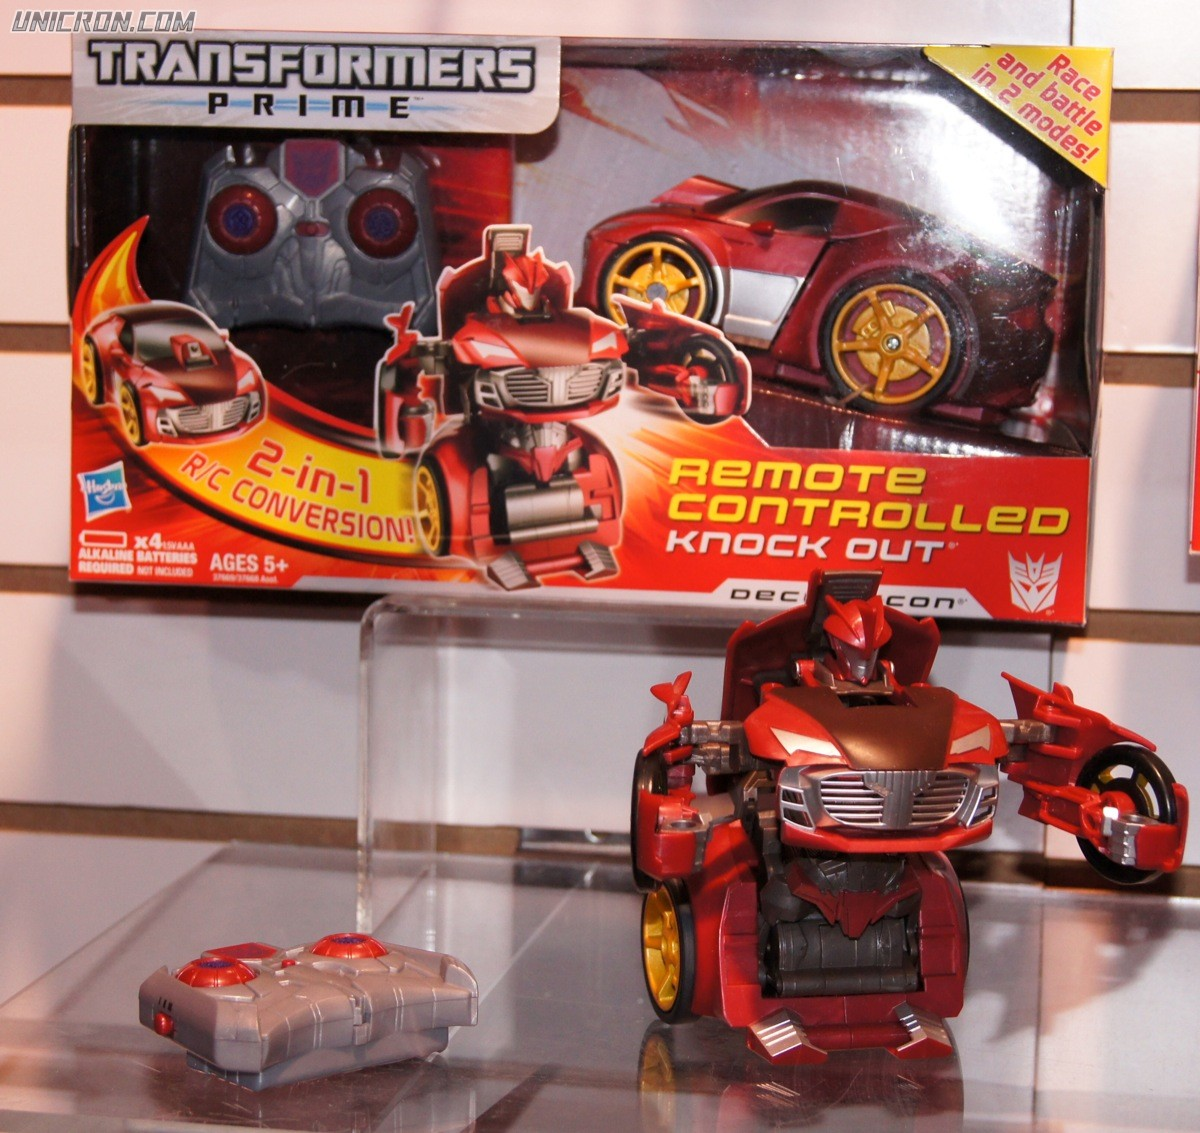 Transformers Prime Knock Out (Remote Control) toy